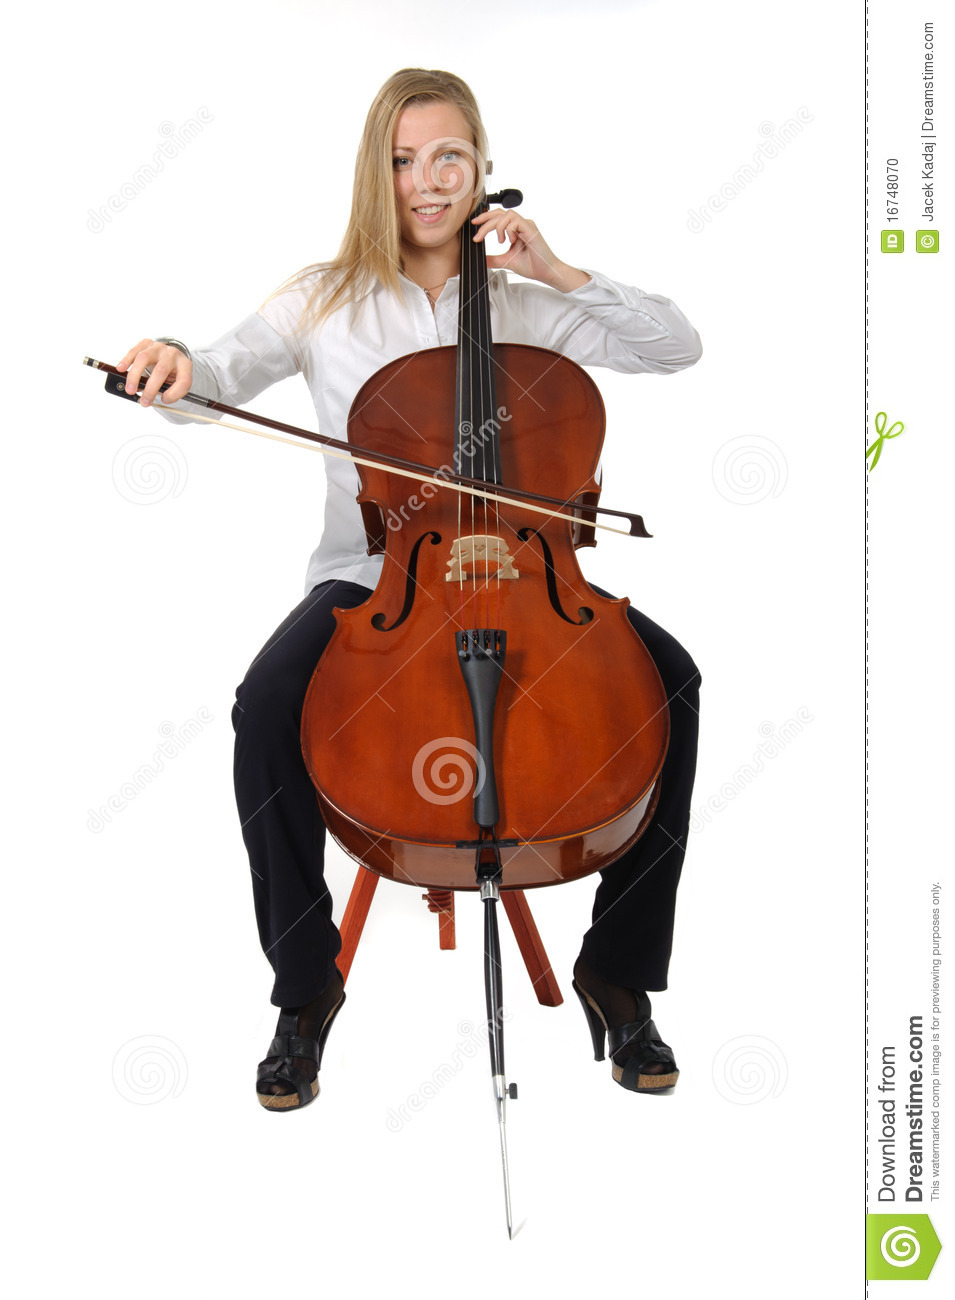 Young Cellist Playing Stock Photo - Image: 16748070